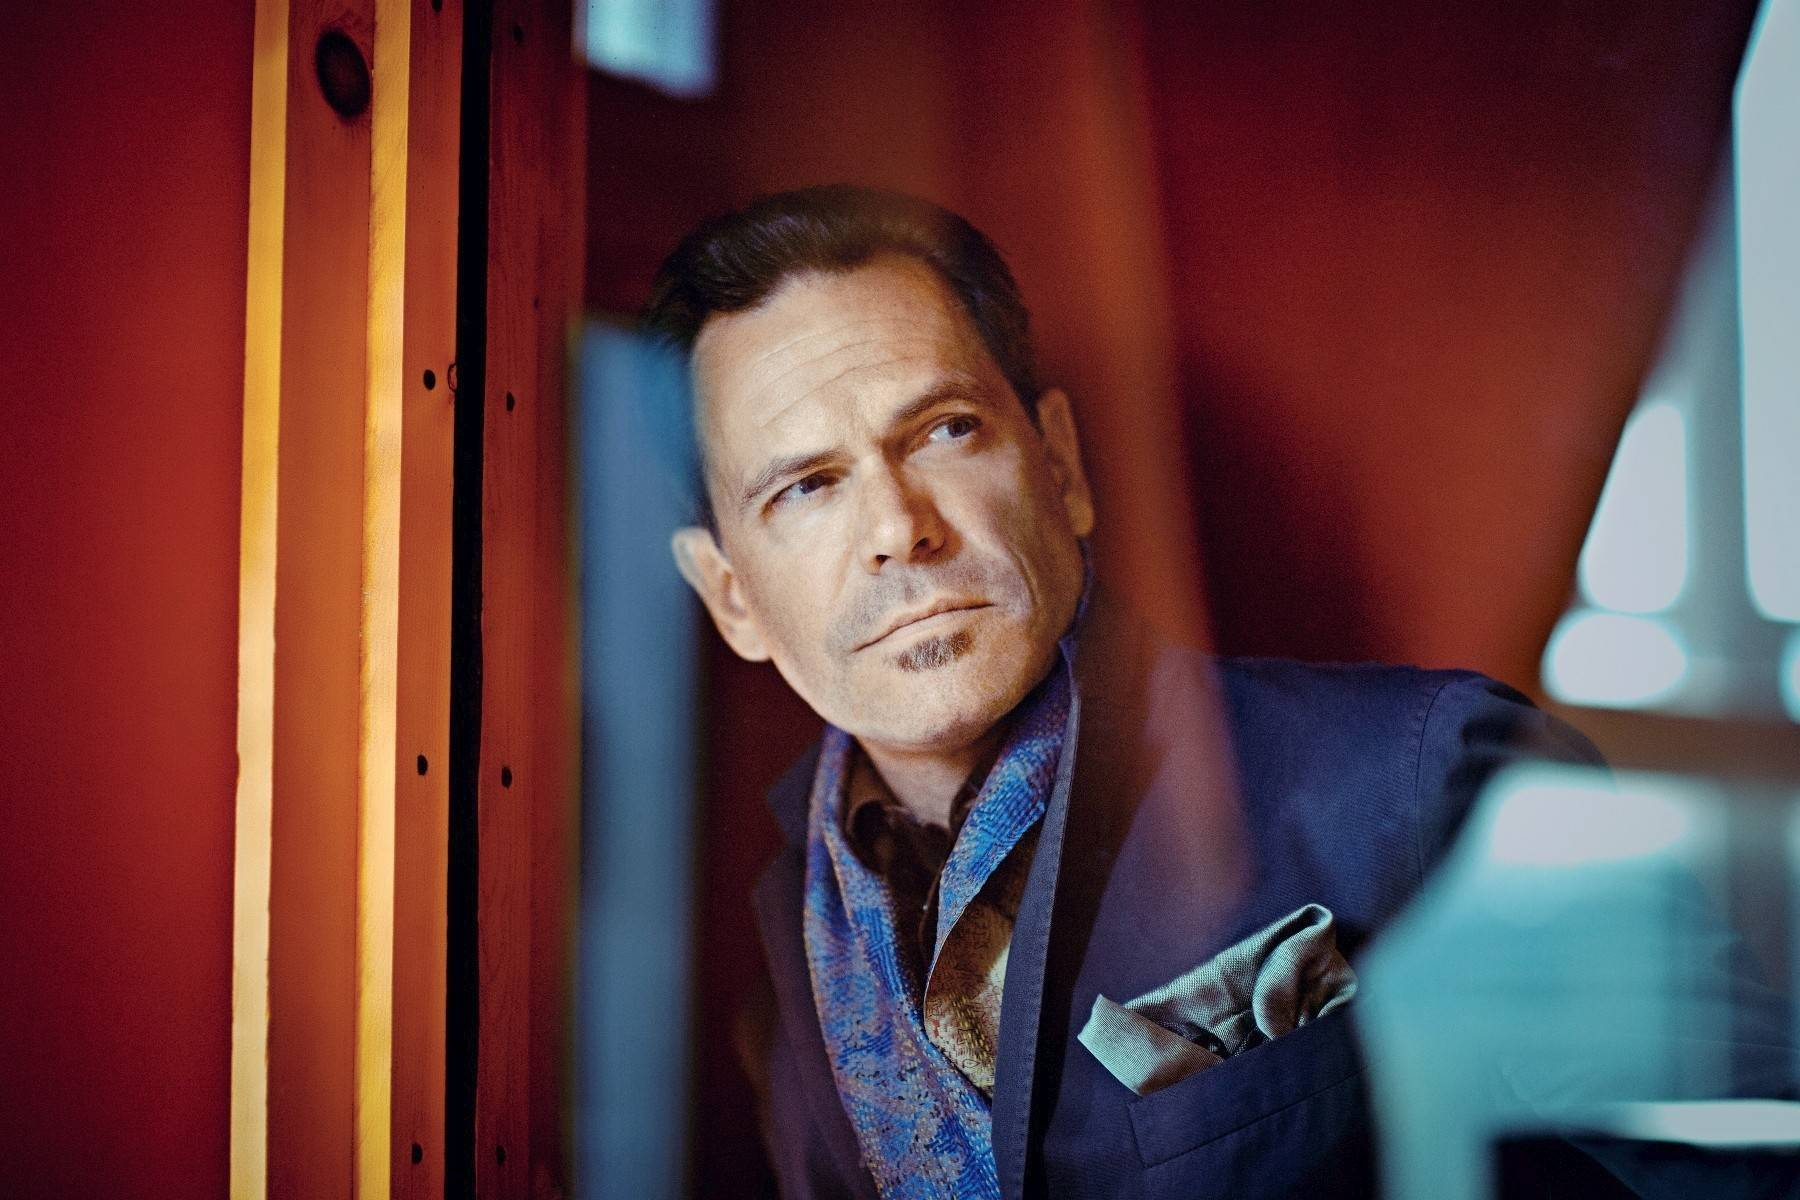 Grammy Award-winner Kurt Elling will perform at 4 p.m. Sunday, Feb. 16, at College of DuPage's McAninch Arts Center in Glen Ellyn.